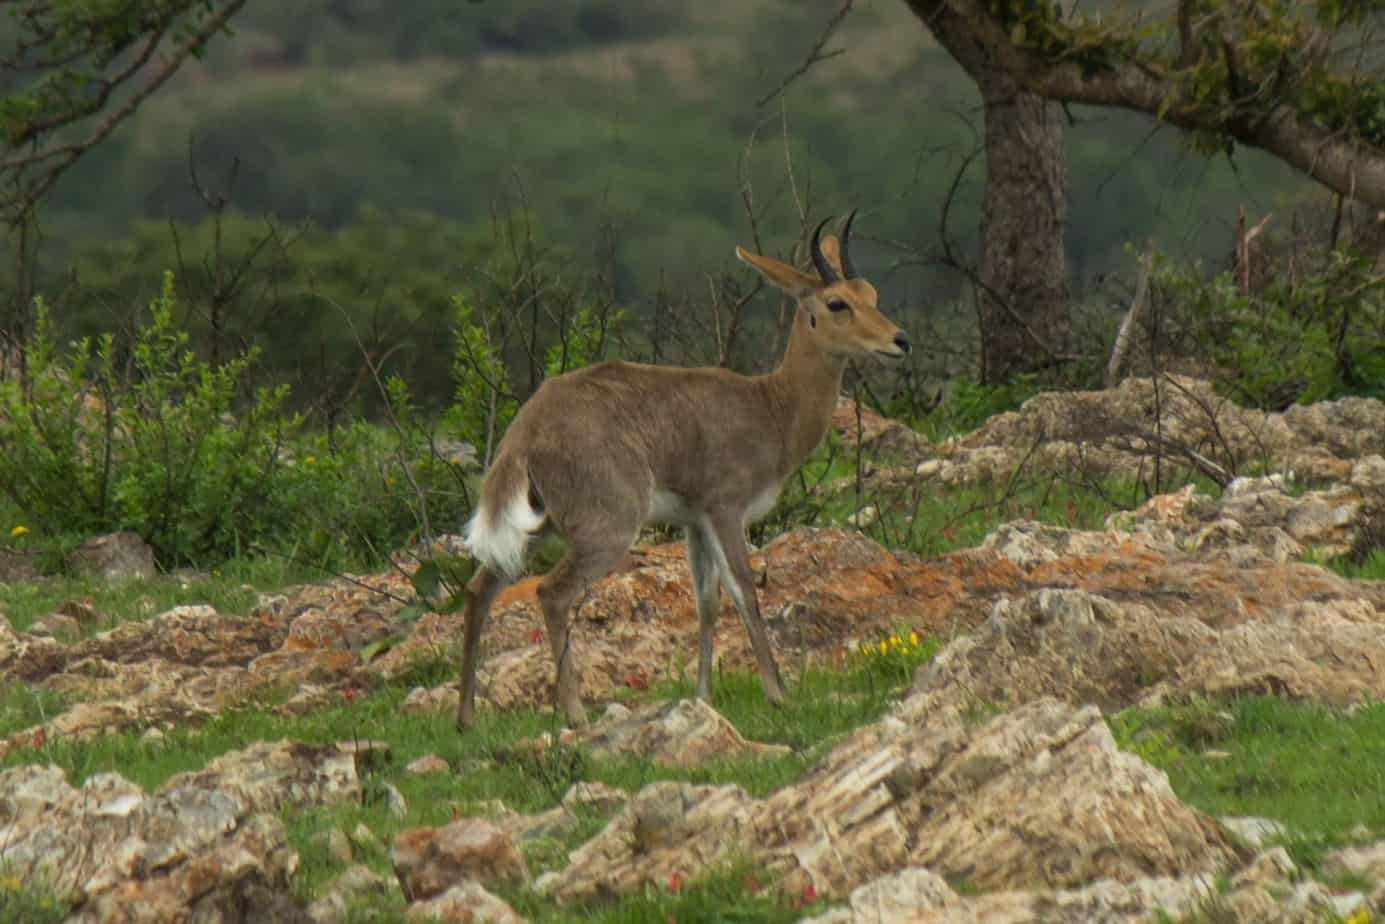 Mountain Reedbuck @ Munyawana Game Reserve. Photo: Håvard Rosenlund